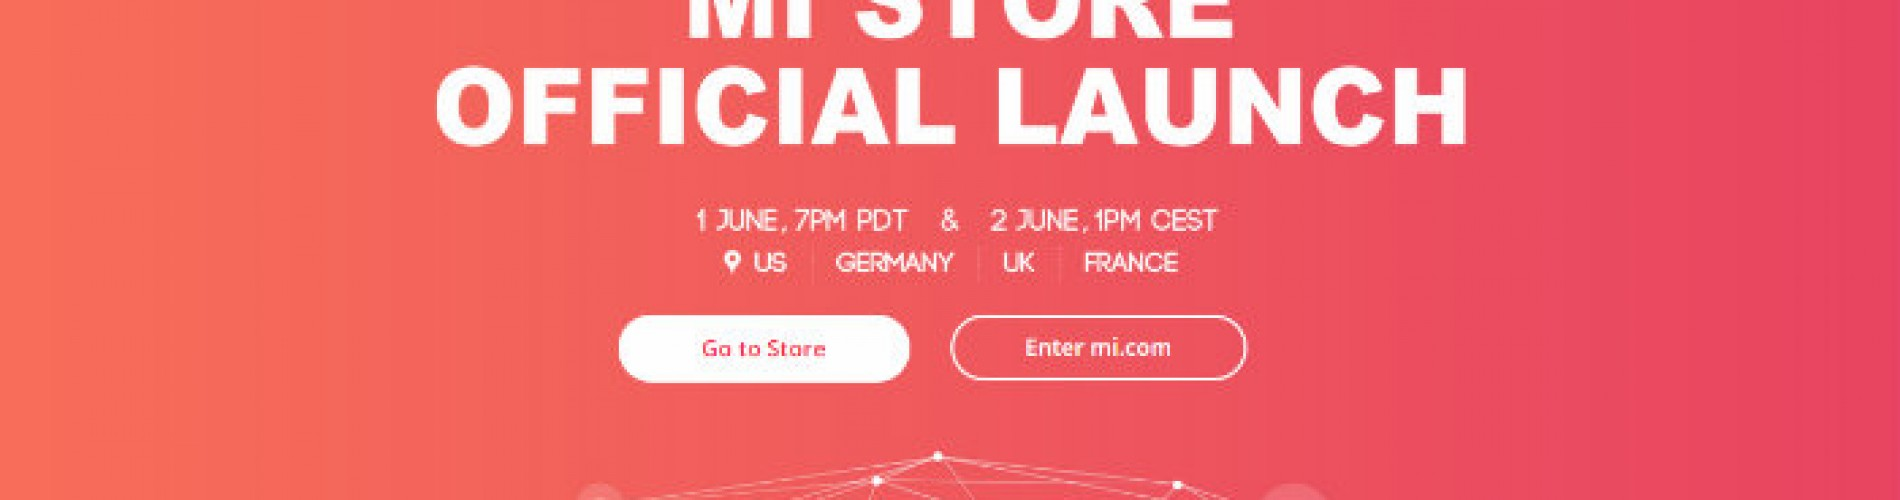 XIaomi Mi Store to officially launch June 1st and 2nd